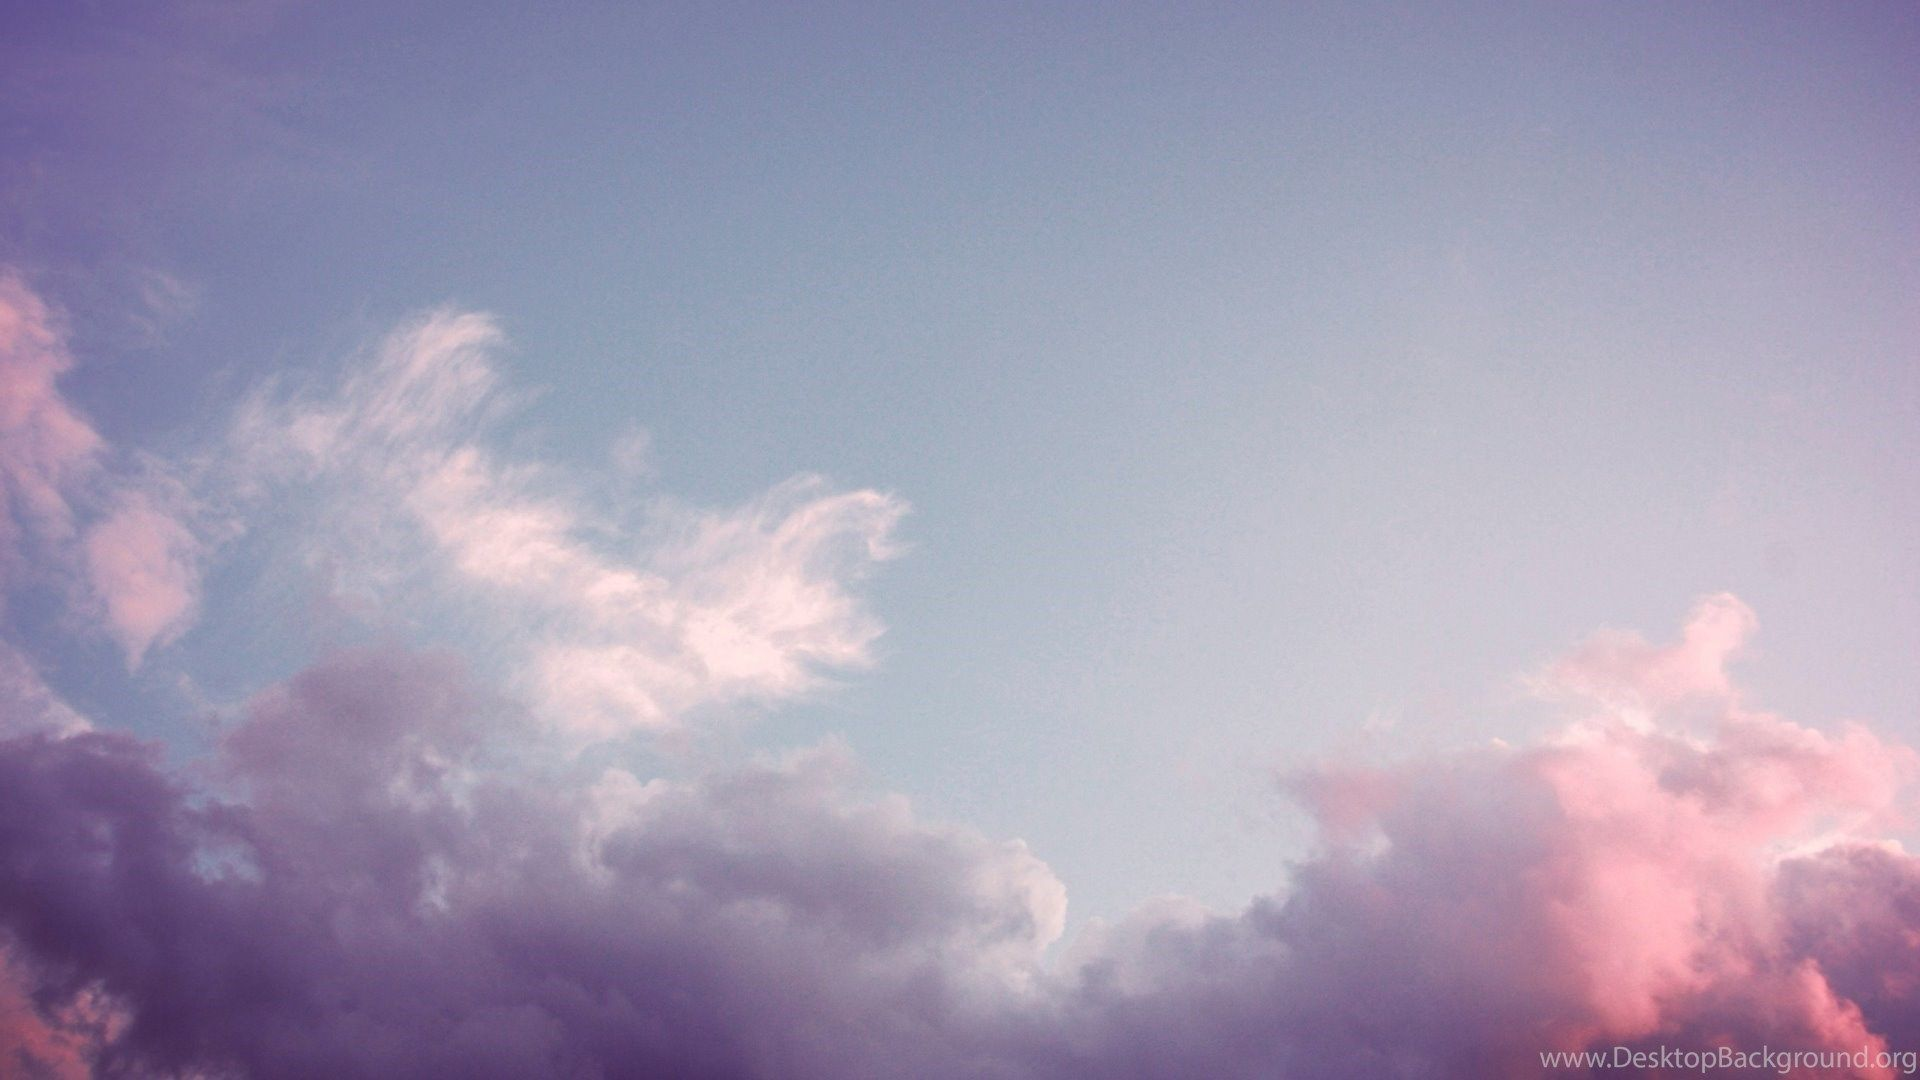 Tumblr Clouds Wallpaper Laptop